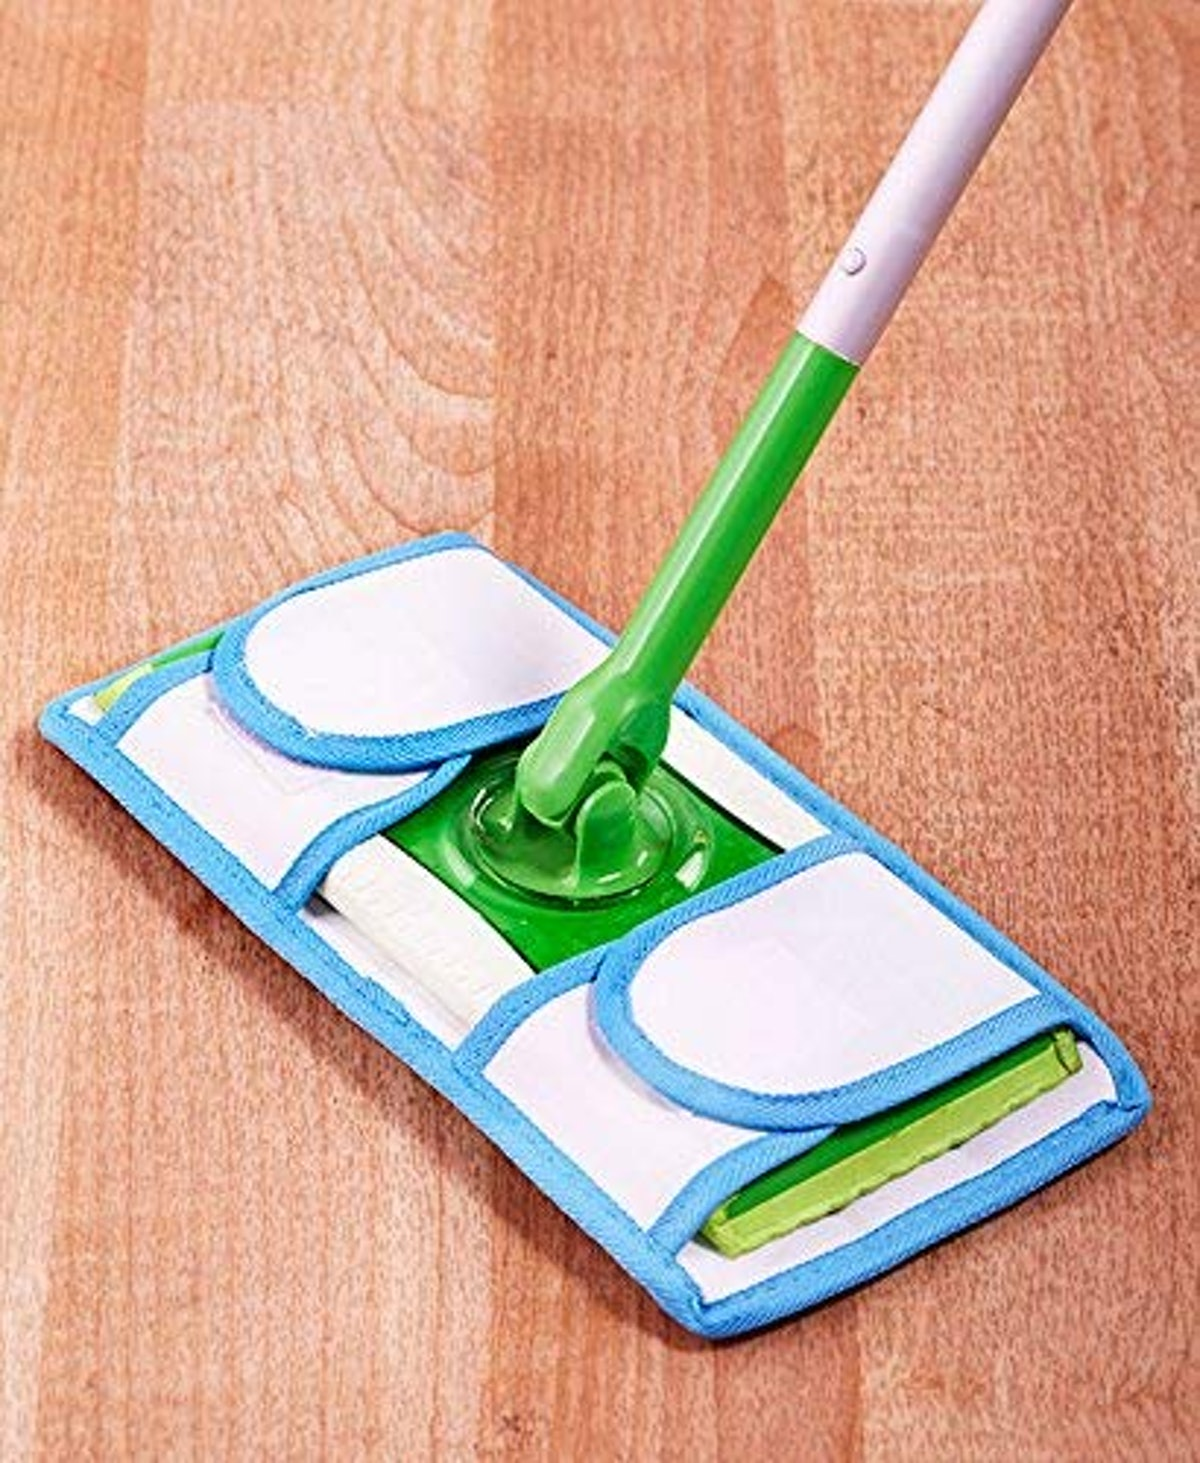 Old Home Kitchen Microfiber Mop Pads (2-Pack)